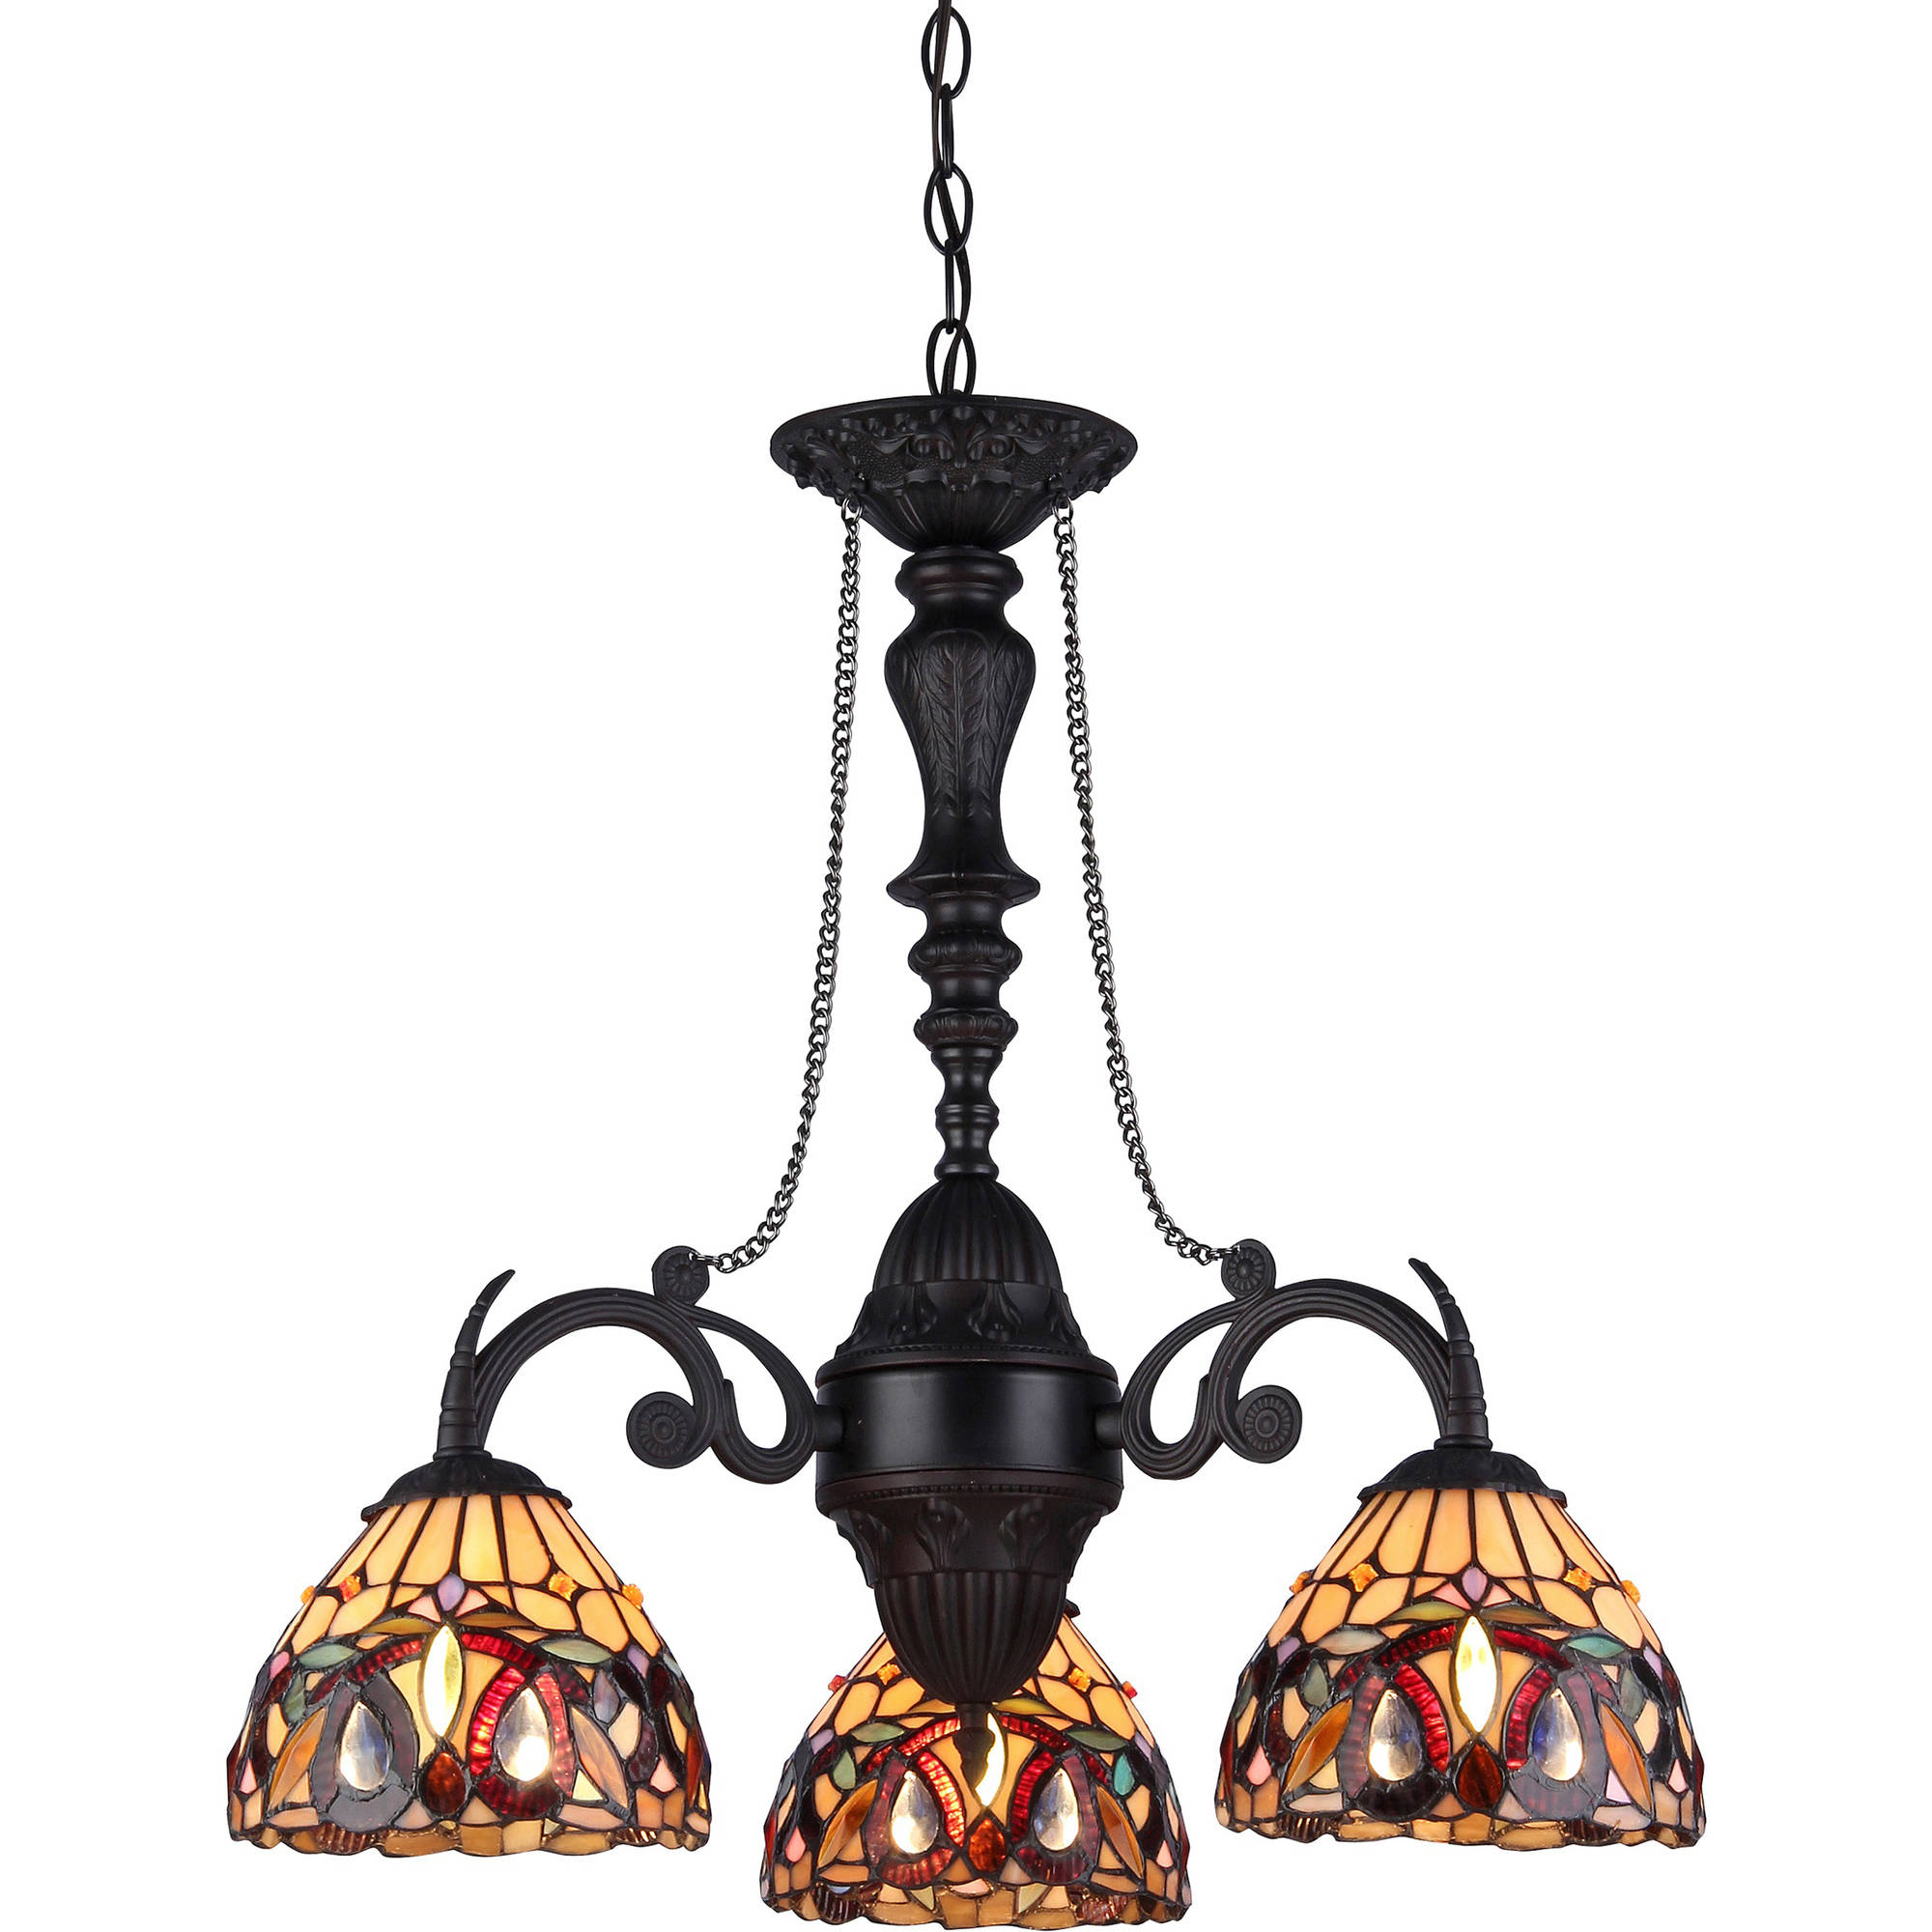 "Chloe Lighting Serenity Tiffany-Style 3-Light Victorian Mini Chandelier, 20.5"" Wide"